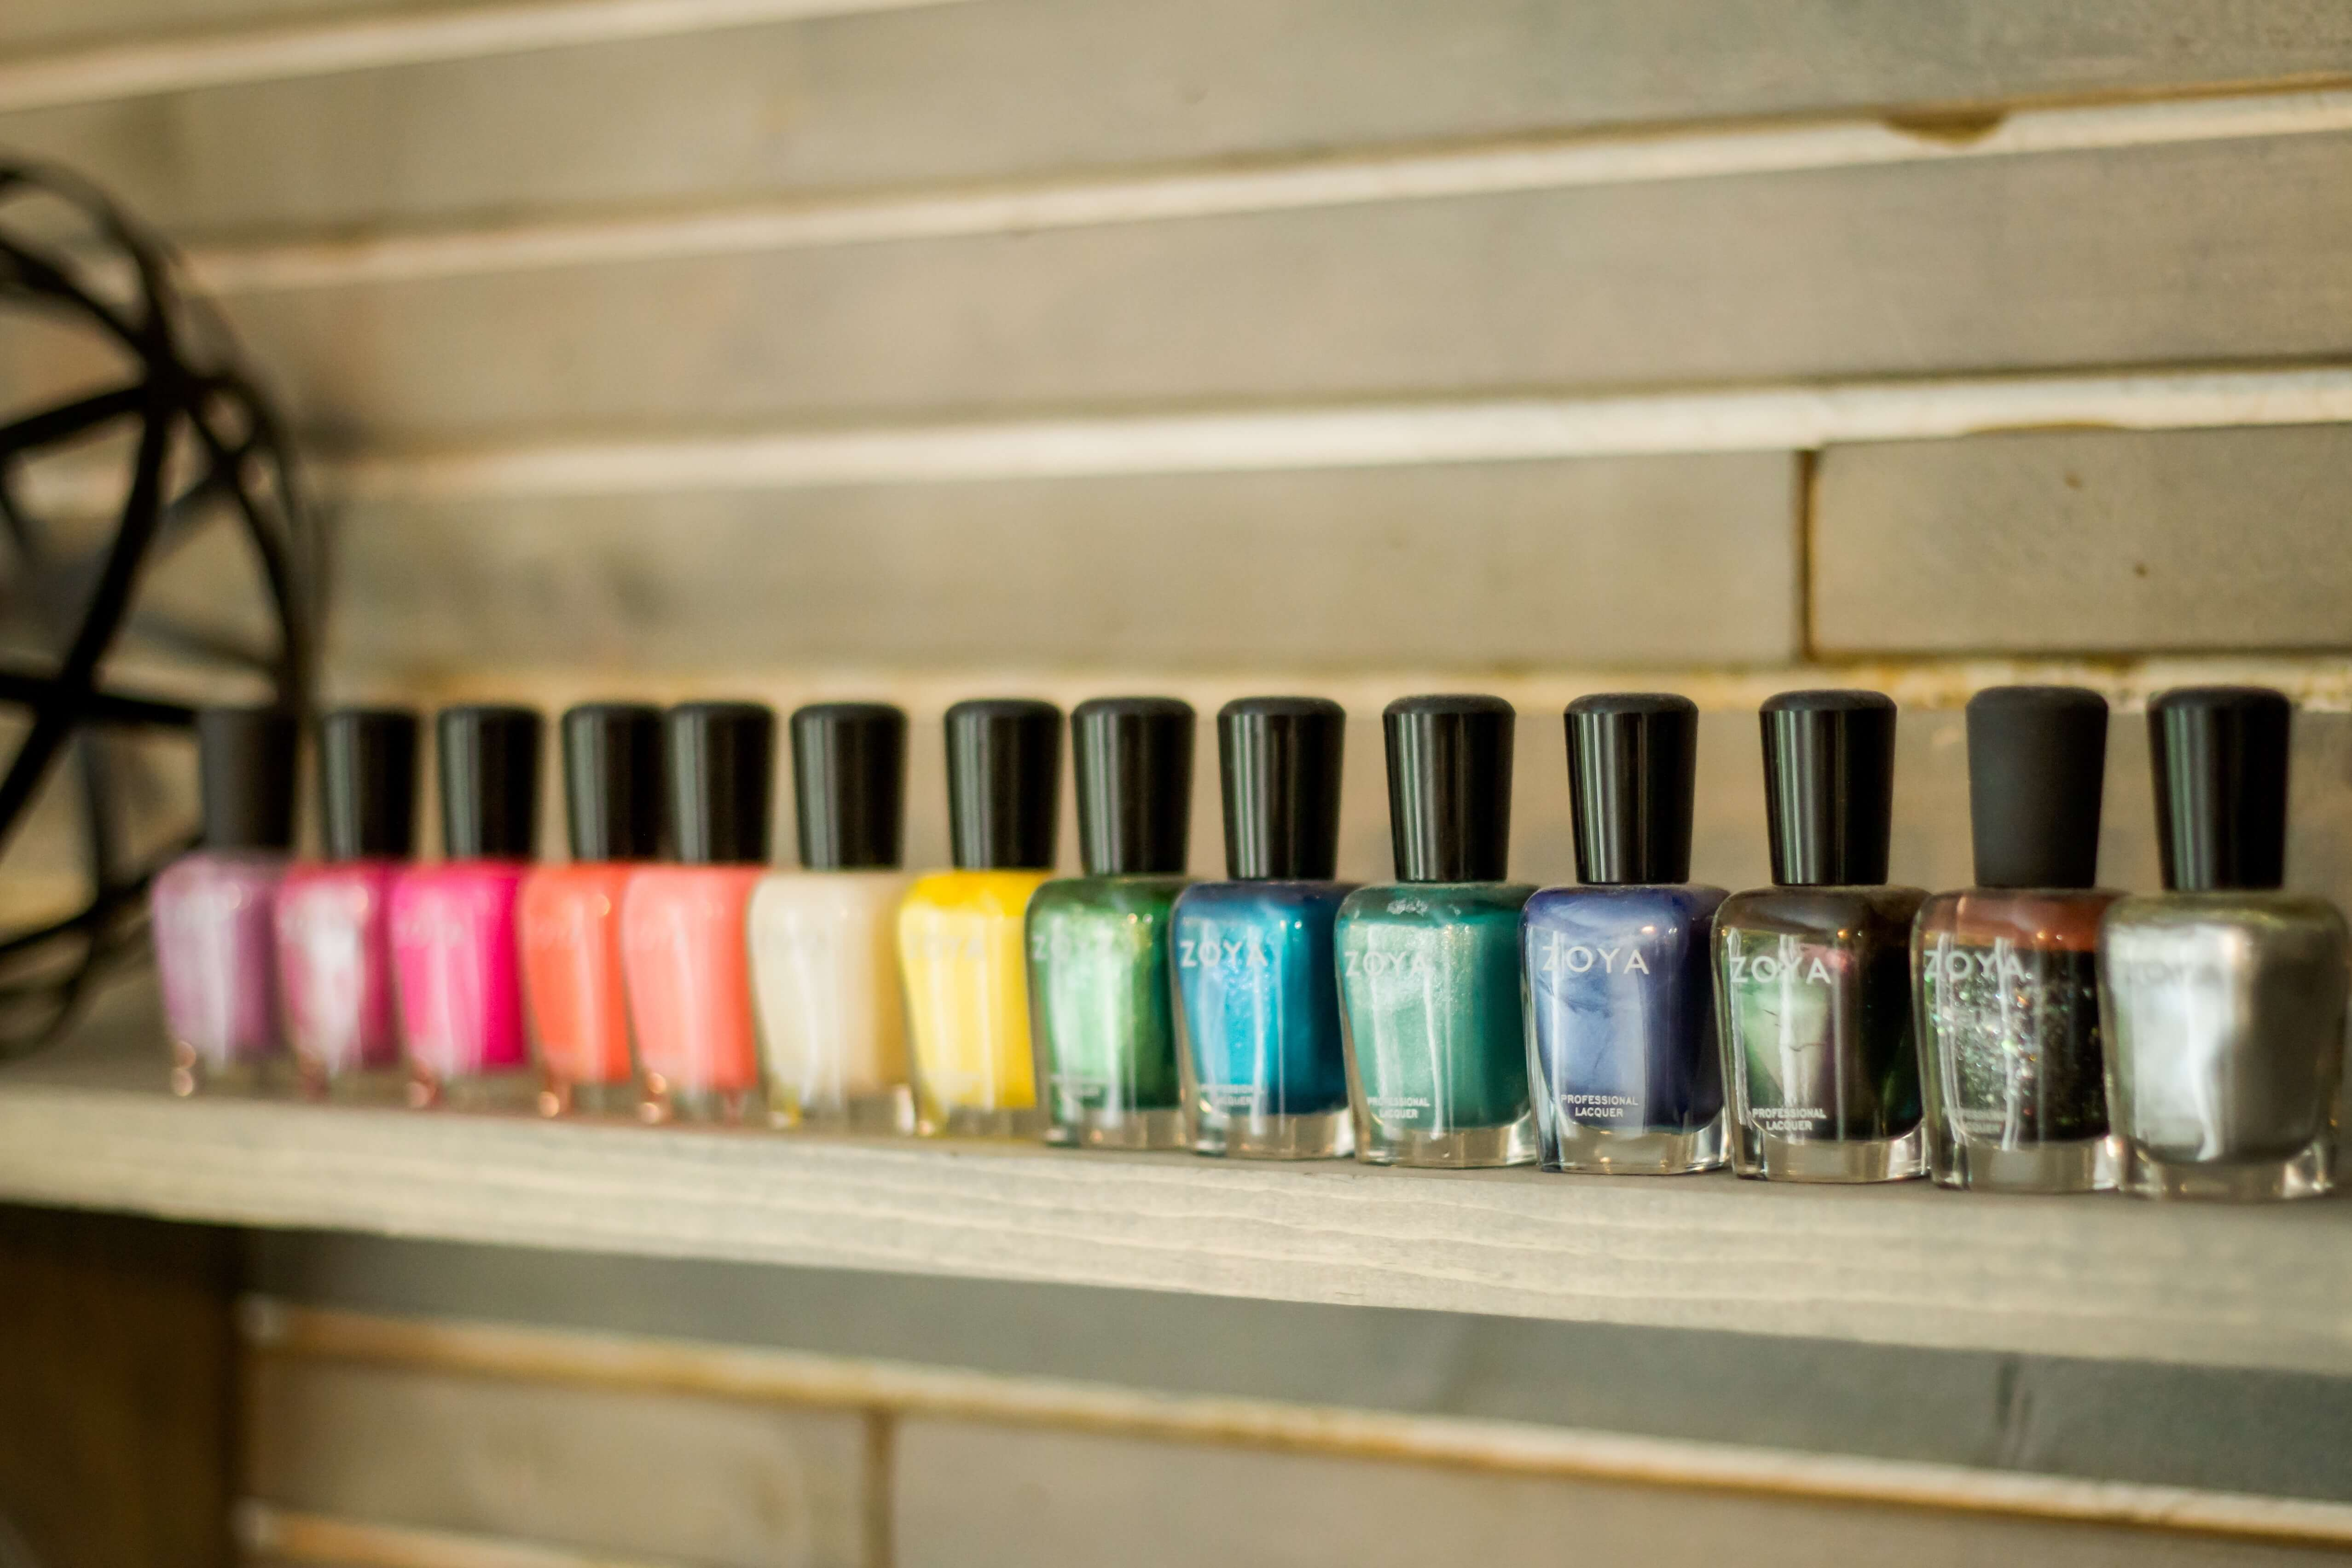 Servicesnails Nail Display Color Wheel Chart Polish Our Product Are Free Of Sulfates Paraben Gluten And Cruelty Polishes 3 5 Cleanliness Is Top Priority